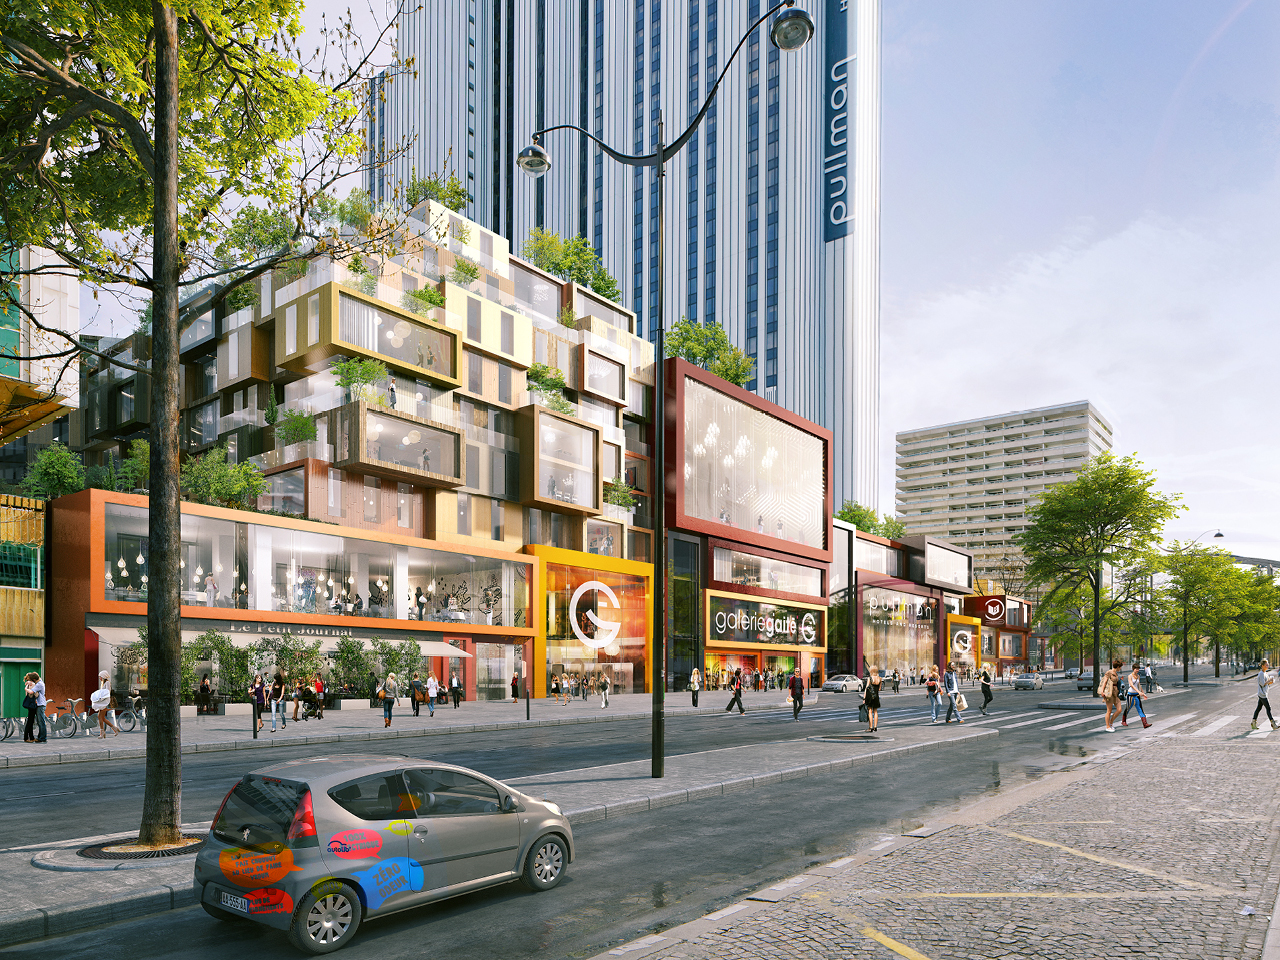 MVRDV's Head of French Development Bertrand Schippan to lecture on MVRDV France in Kuala Lumpur on October 19th